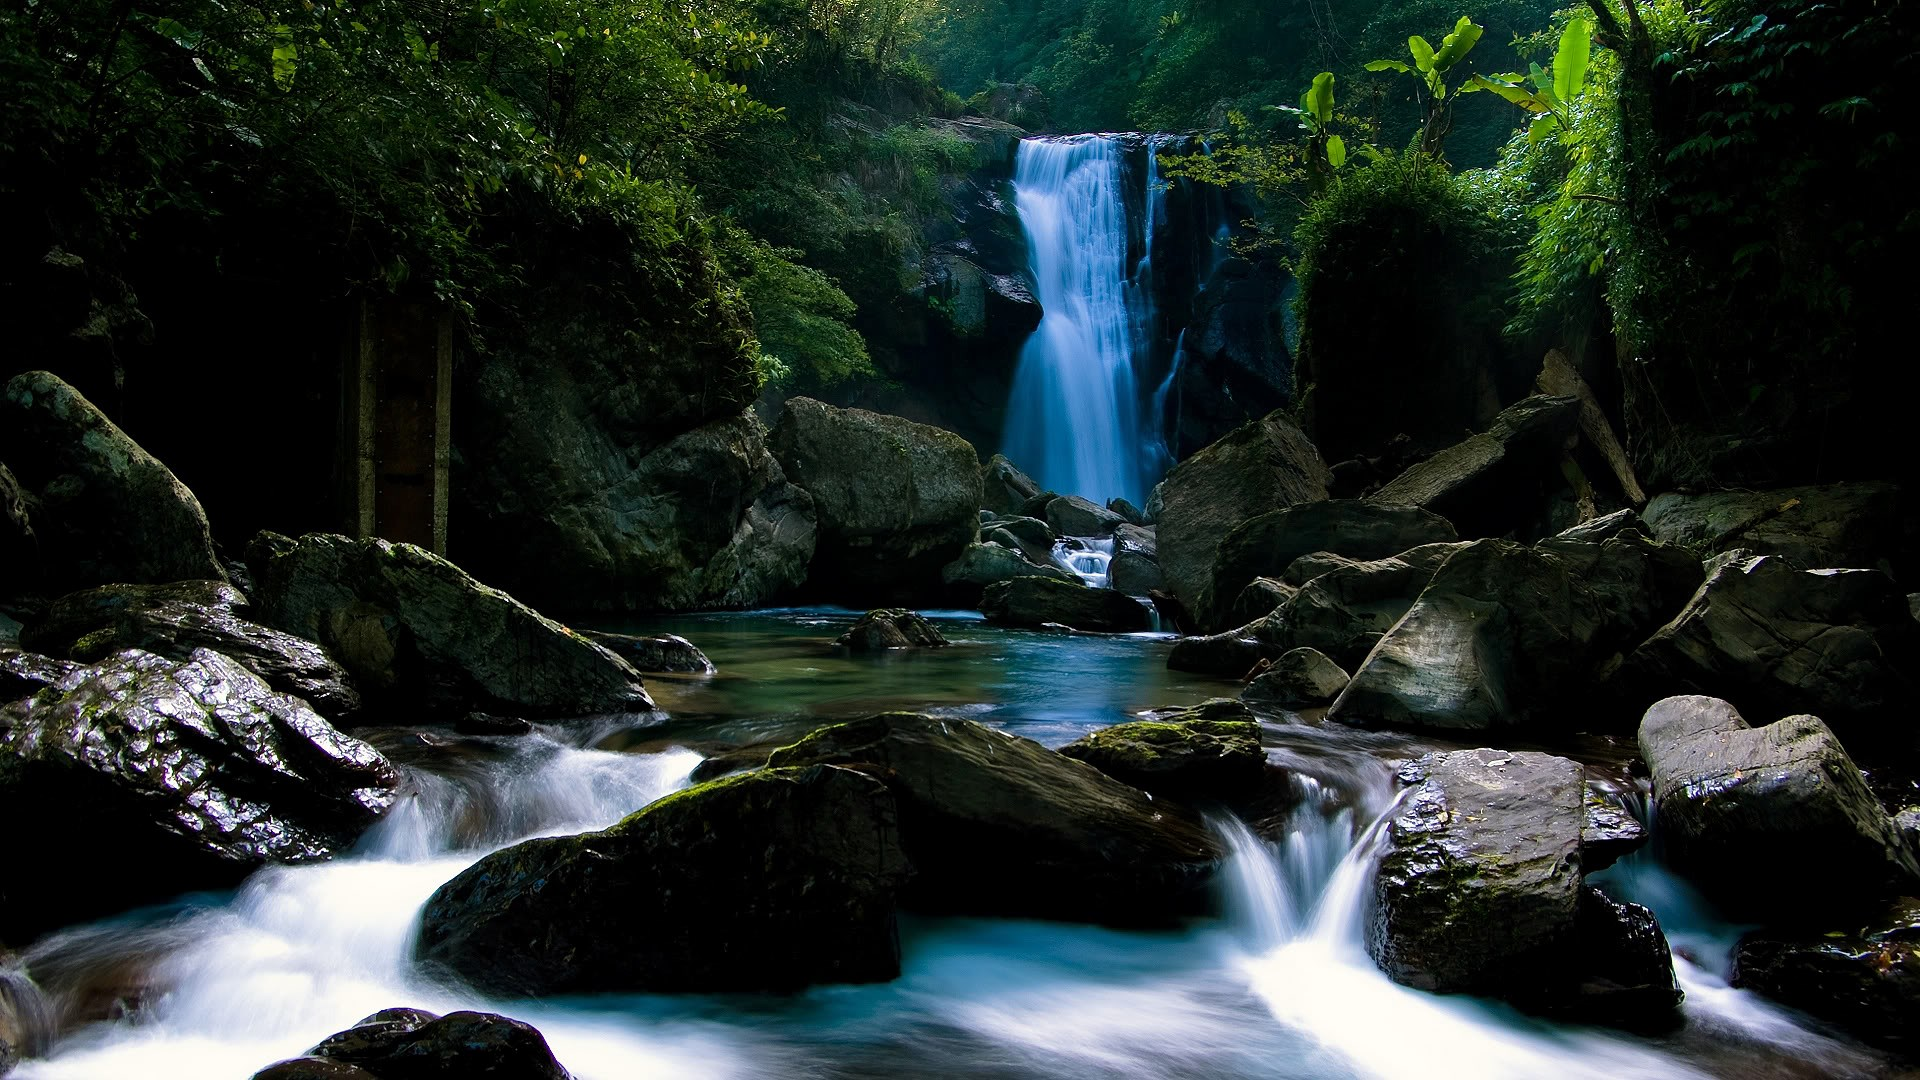 images-waterfall-wallpaper-wpc5809989